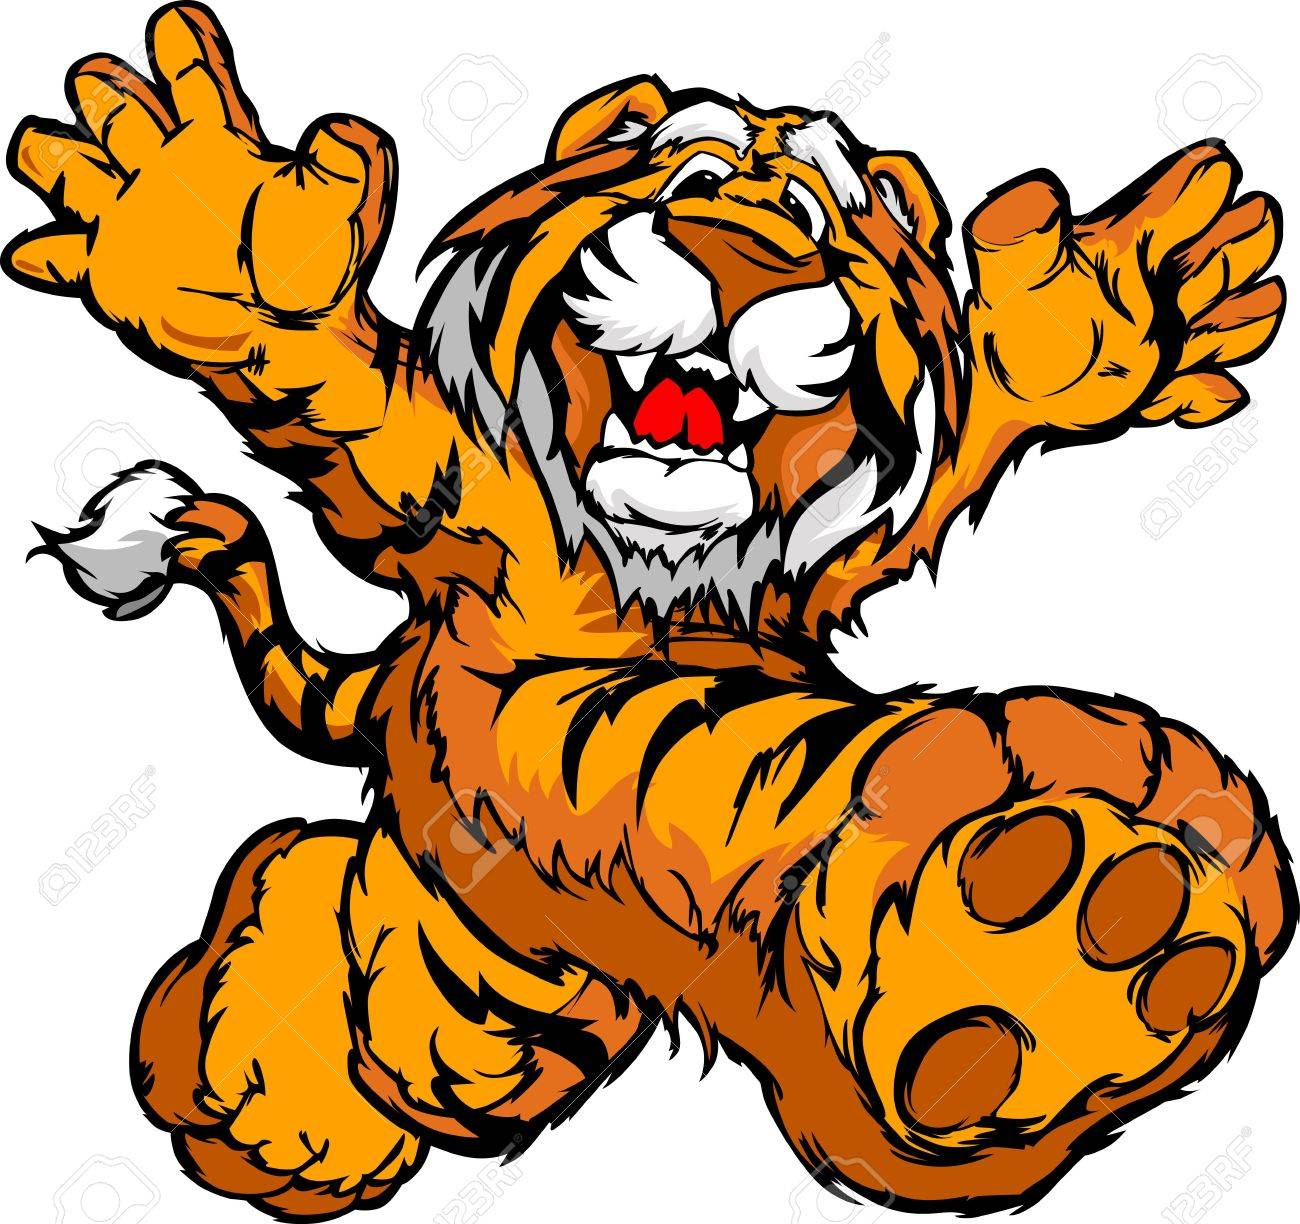 Smiling Tiger Running with hands Mascot  Vector Illustration Stock Vector - 12498000